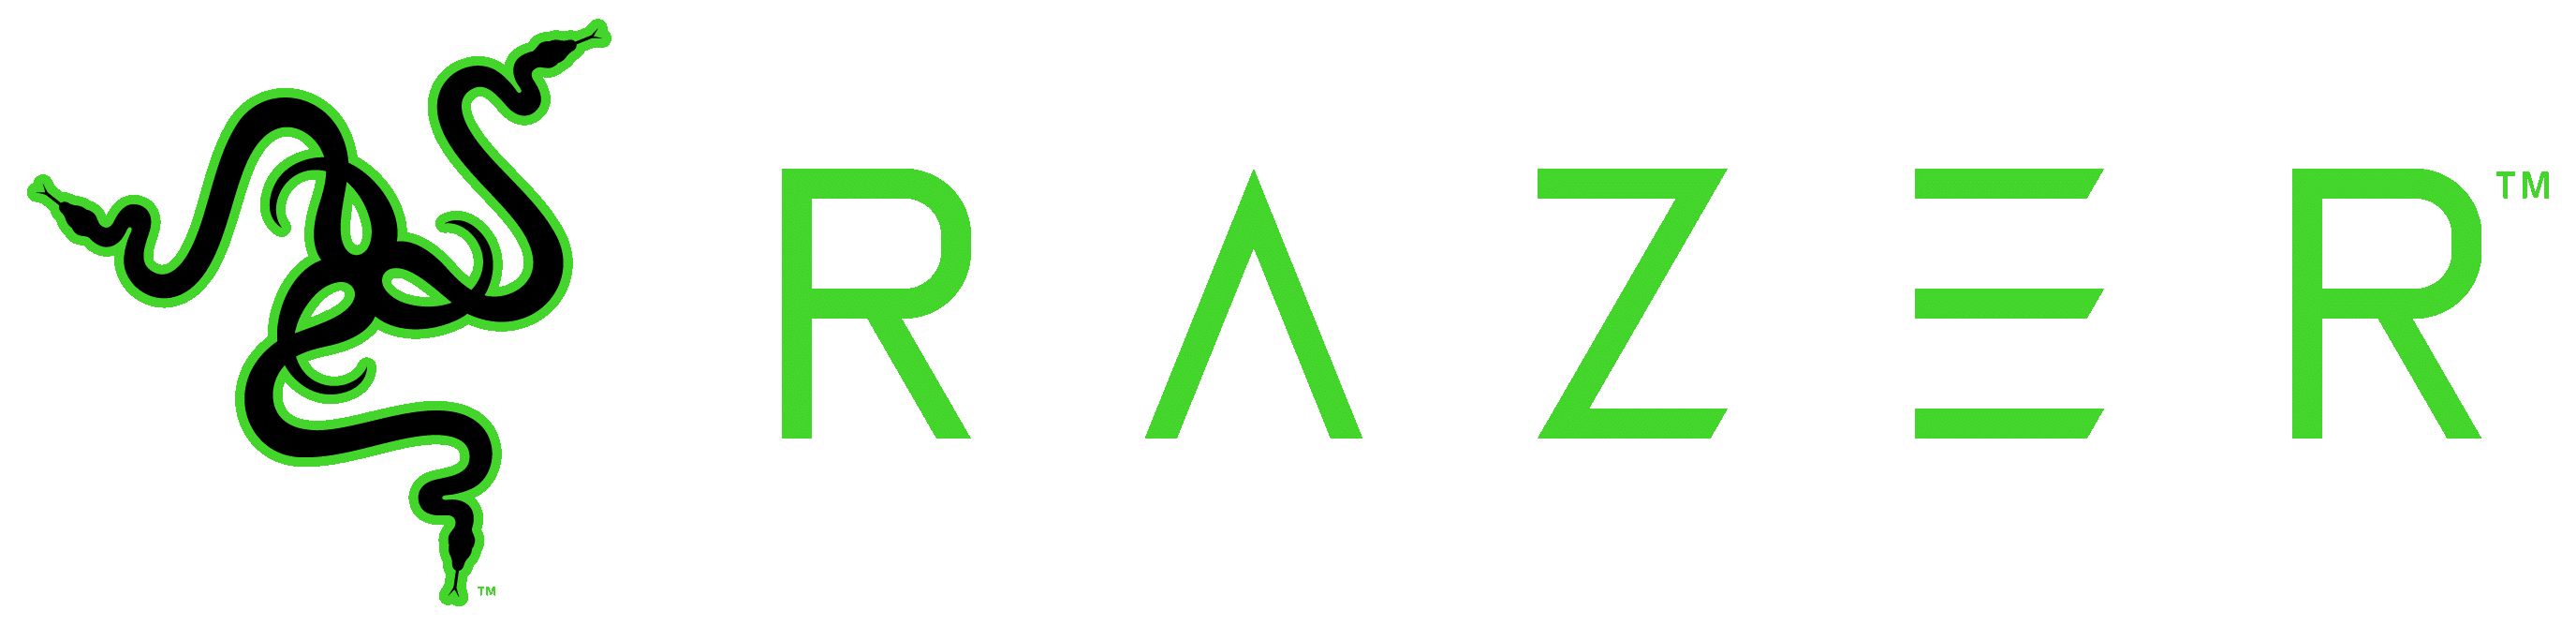 The Razer logo.